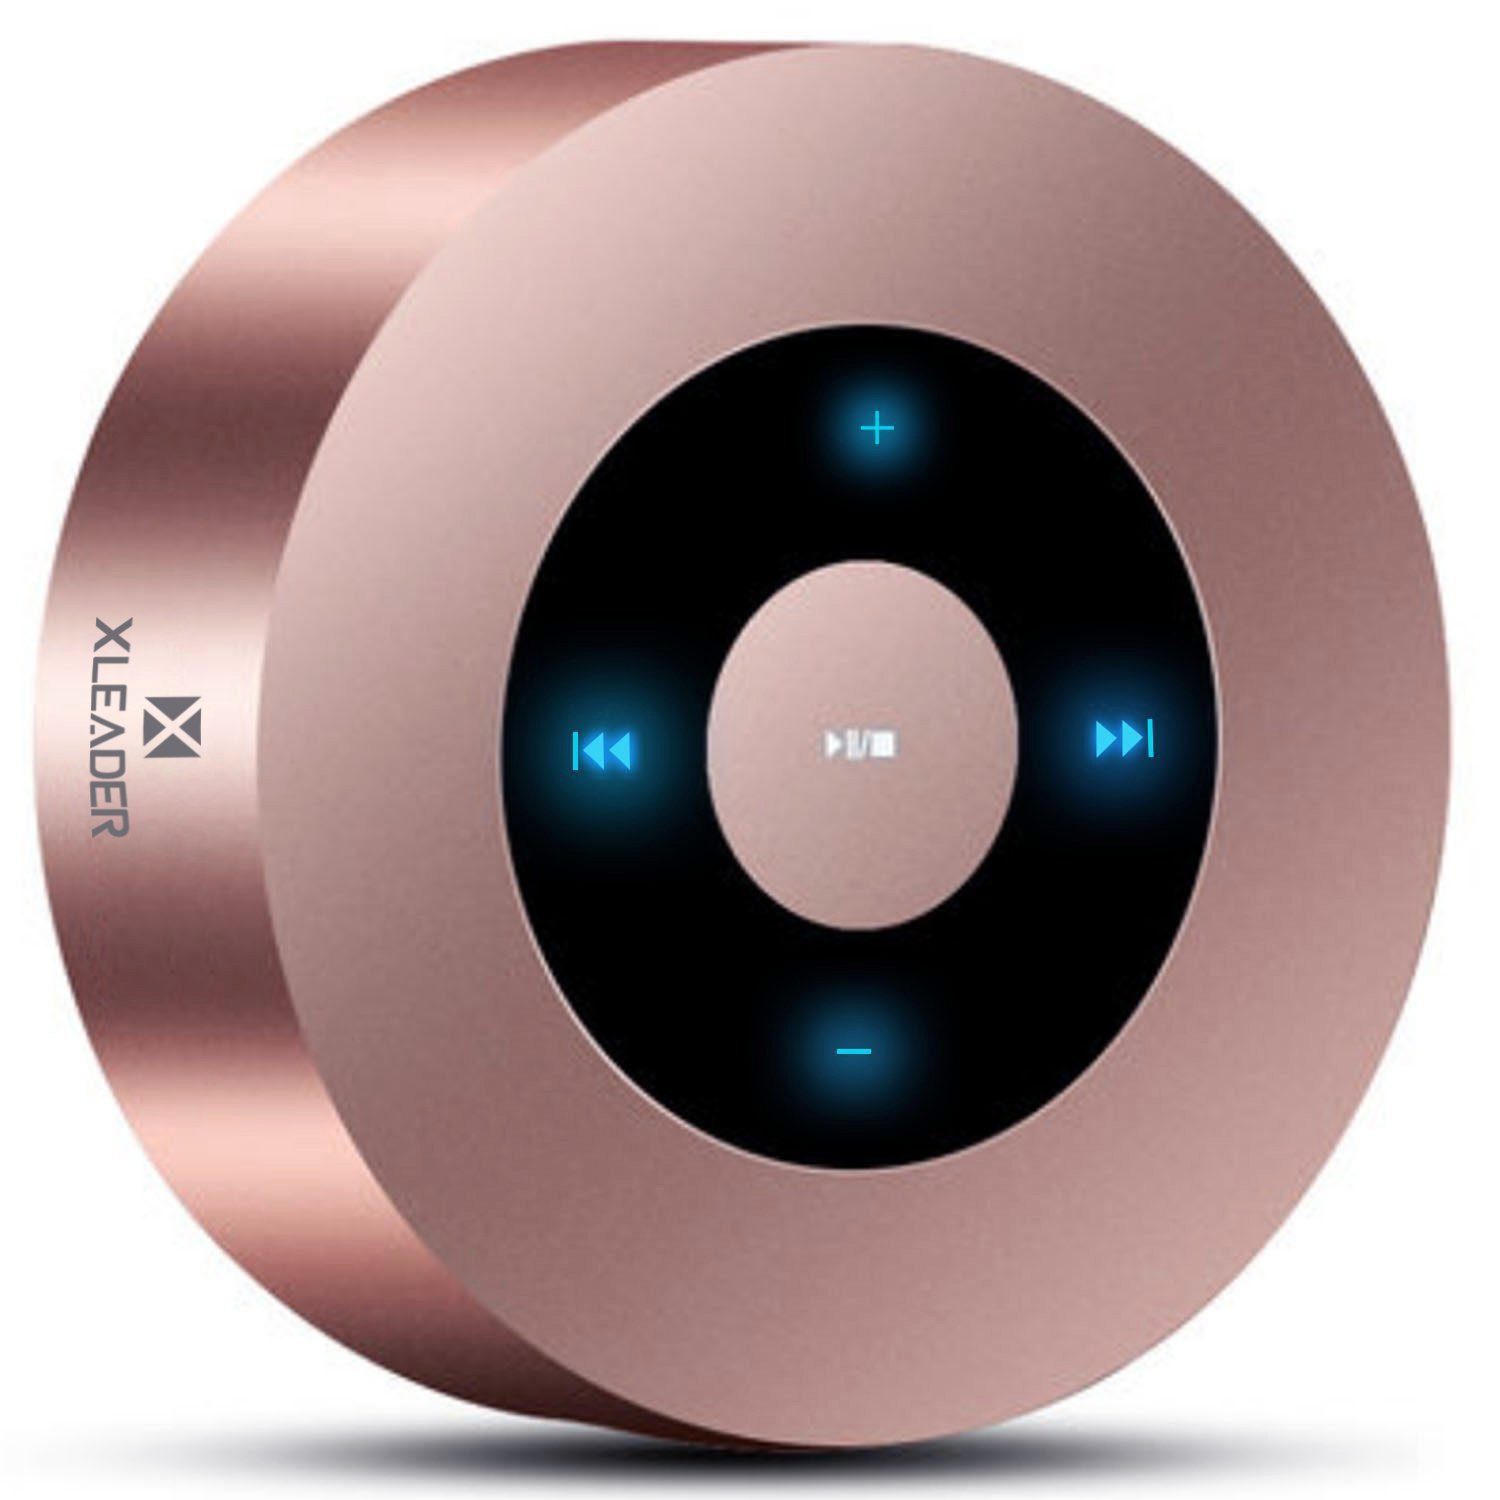 [LED Touch Design] Bluetooth Speaker, XLeader Portable Speaker with HD Sound / 12-Hour Playtime / Bluetooth 4.1 / Micro SD Support, for iphone/ipad/Tablet/Laptop/Echo dot (Rose gold) by XLeader